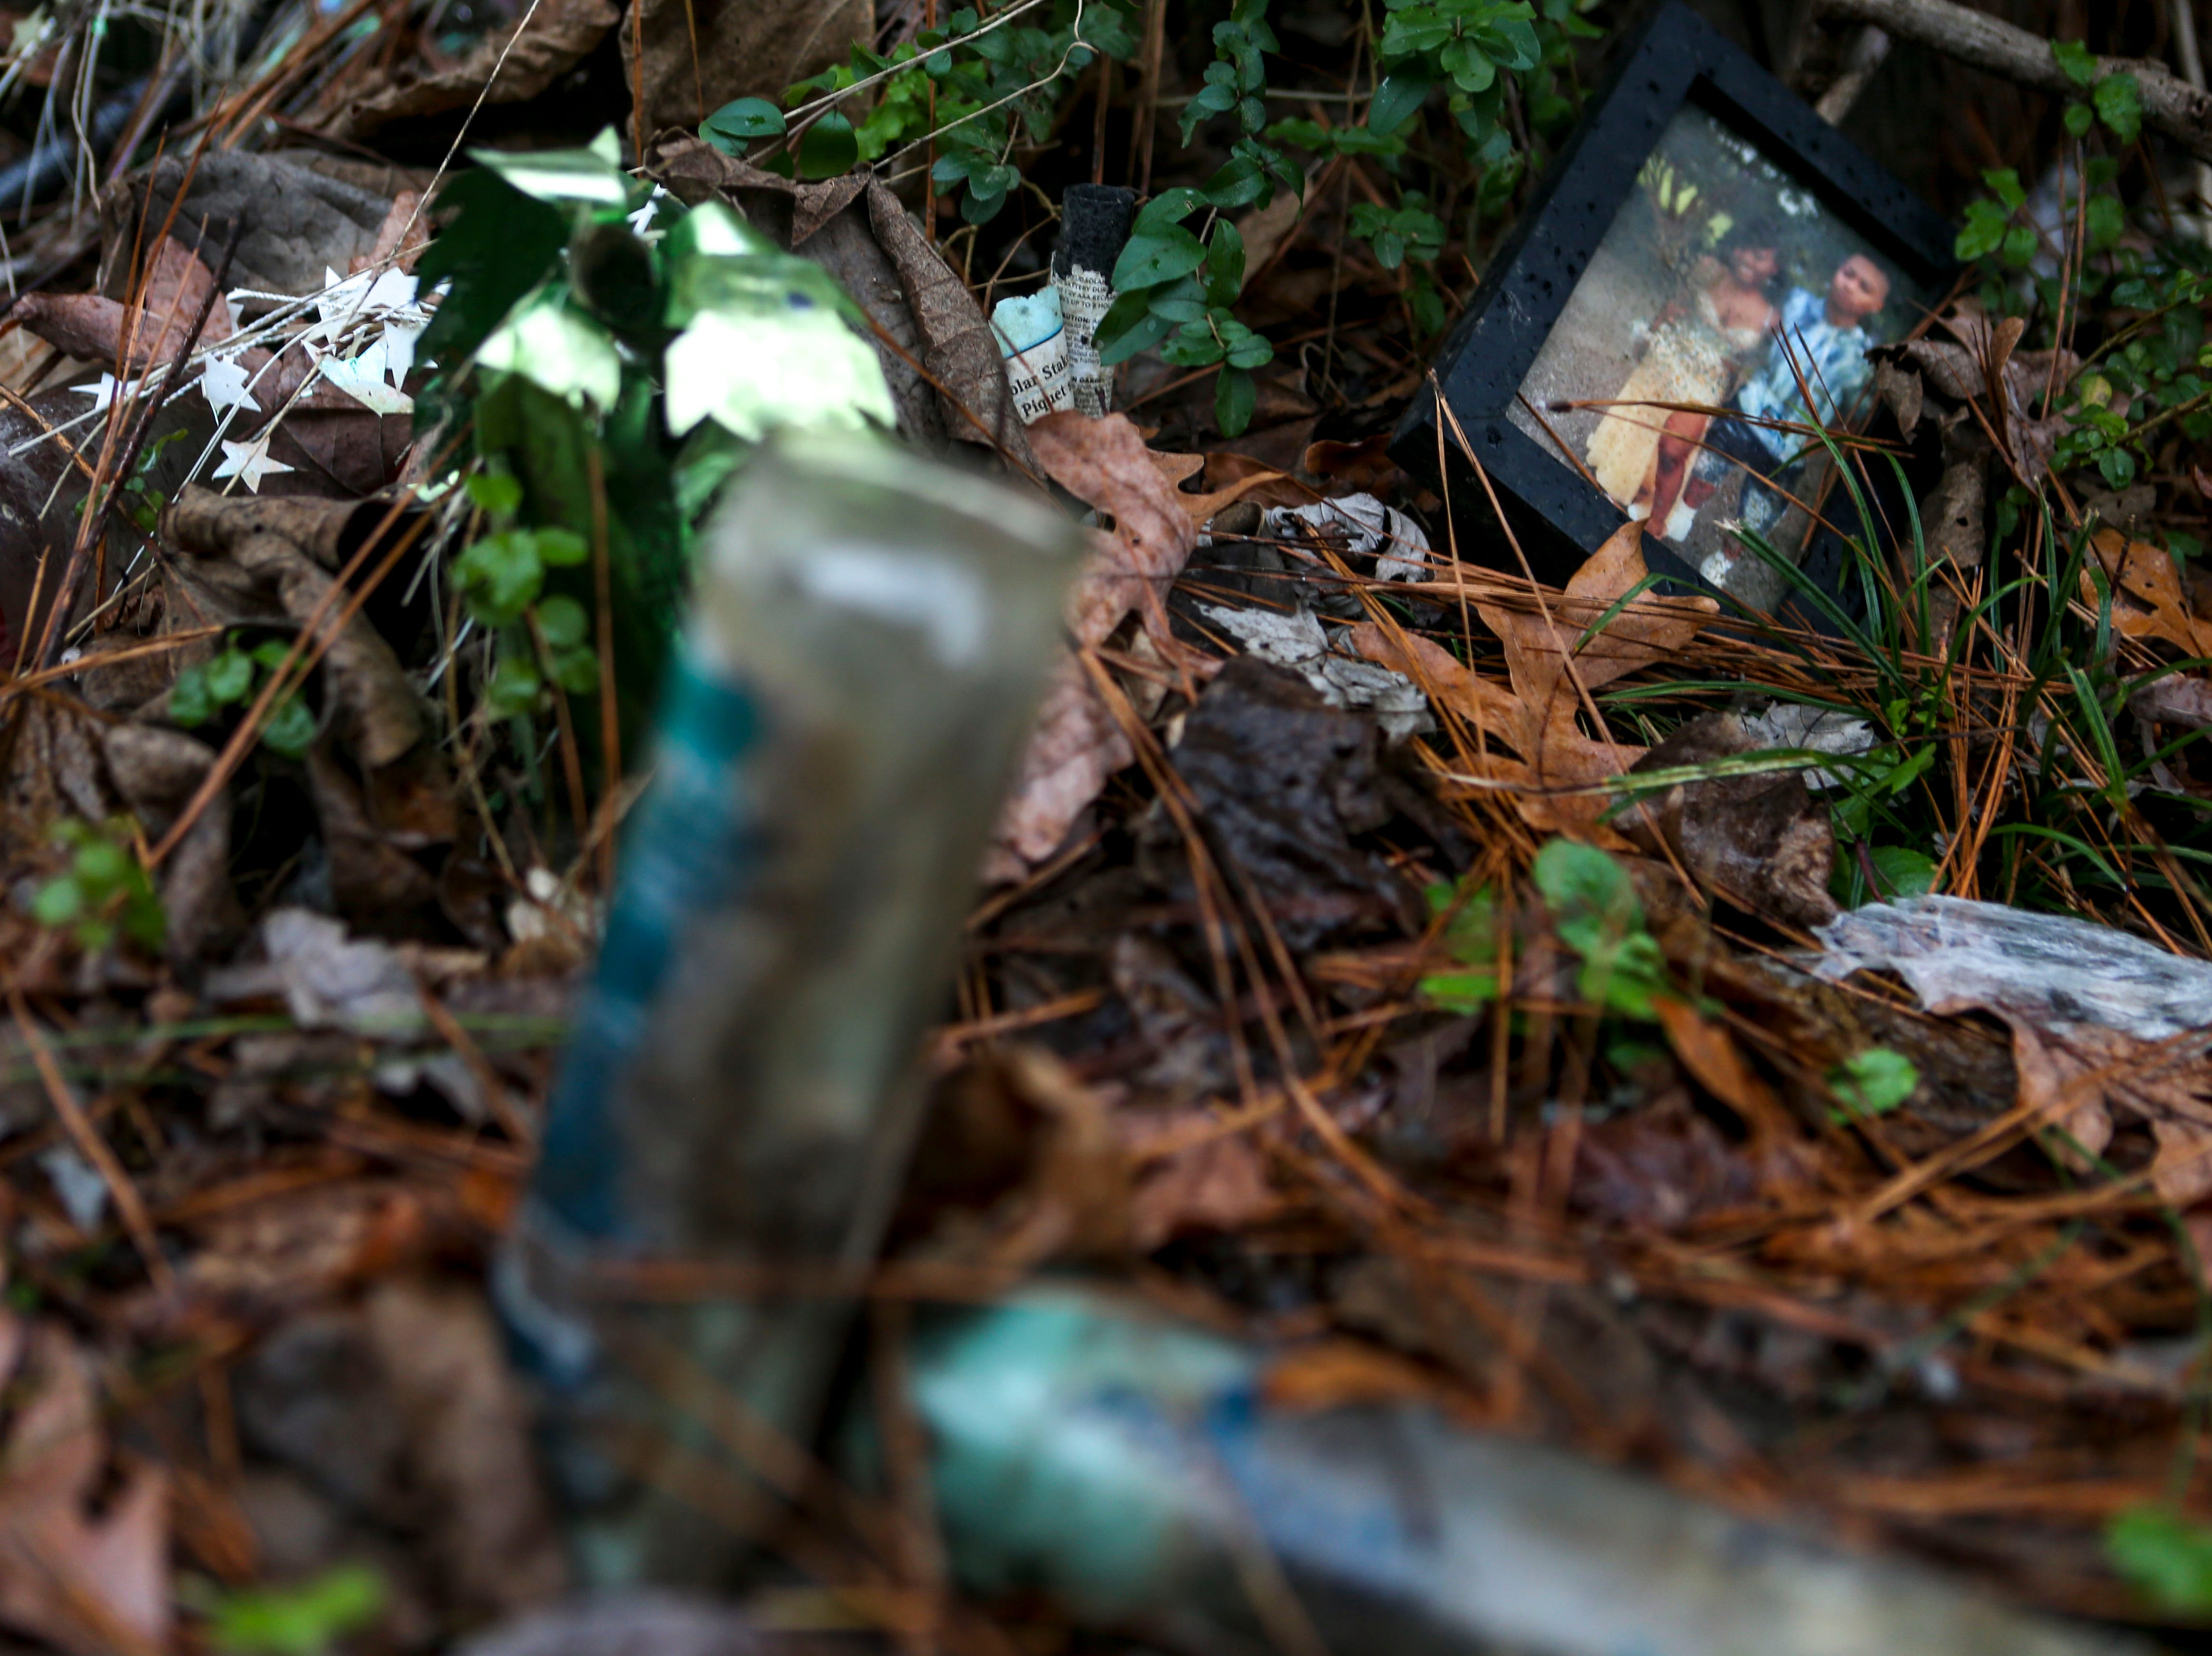 A framed picture that shows Kentavious Wilson and a friend  is placed at the base of a tree near the location where Wilson was killed last January at 600 block of Coach Street in Brownsville, Tenn., on Wednesday, Jan. 2, 2019.